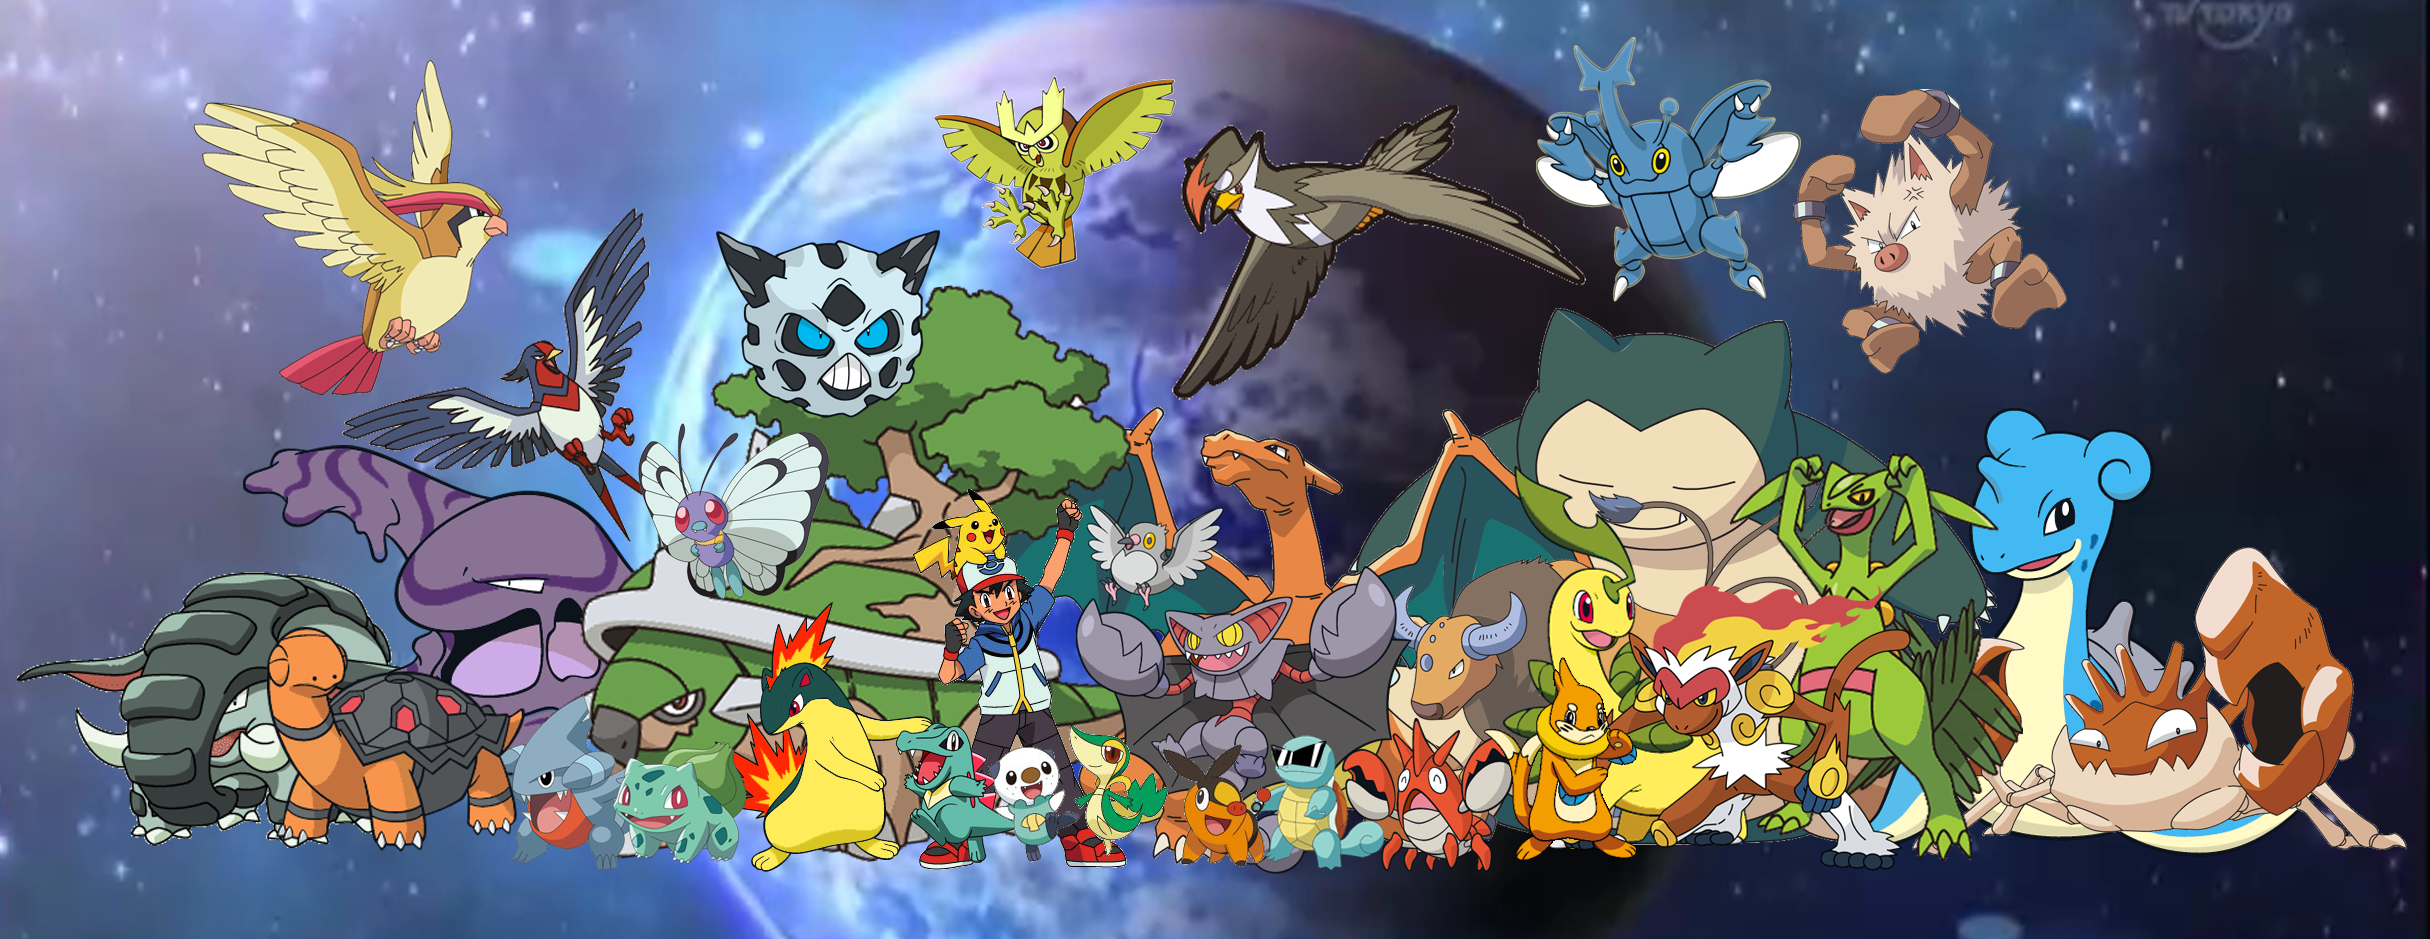 Ash and Pokemon All by PkLucario on DeviantArt